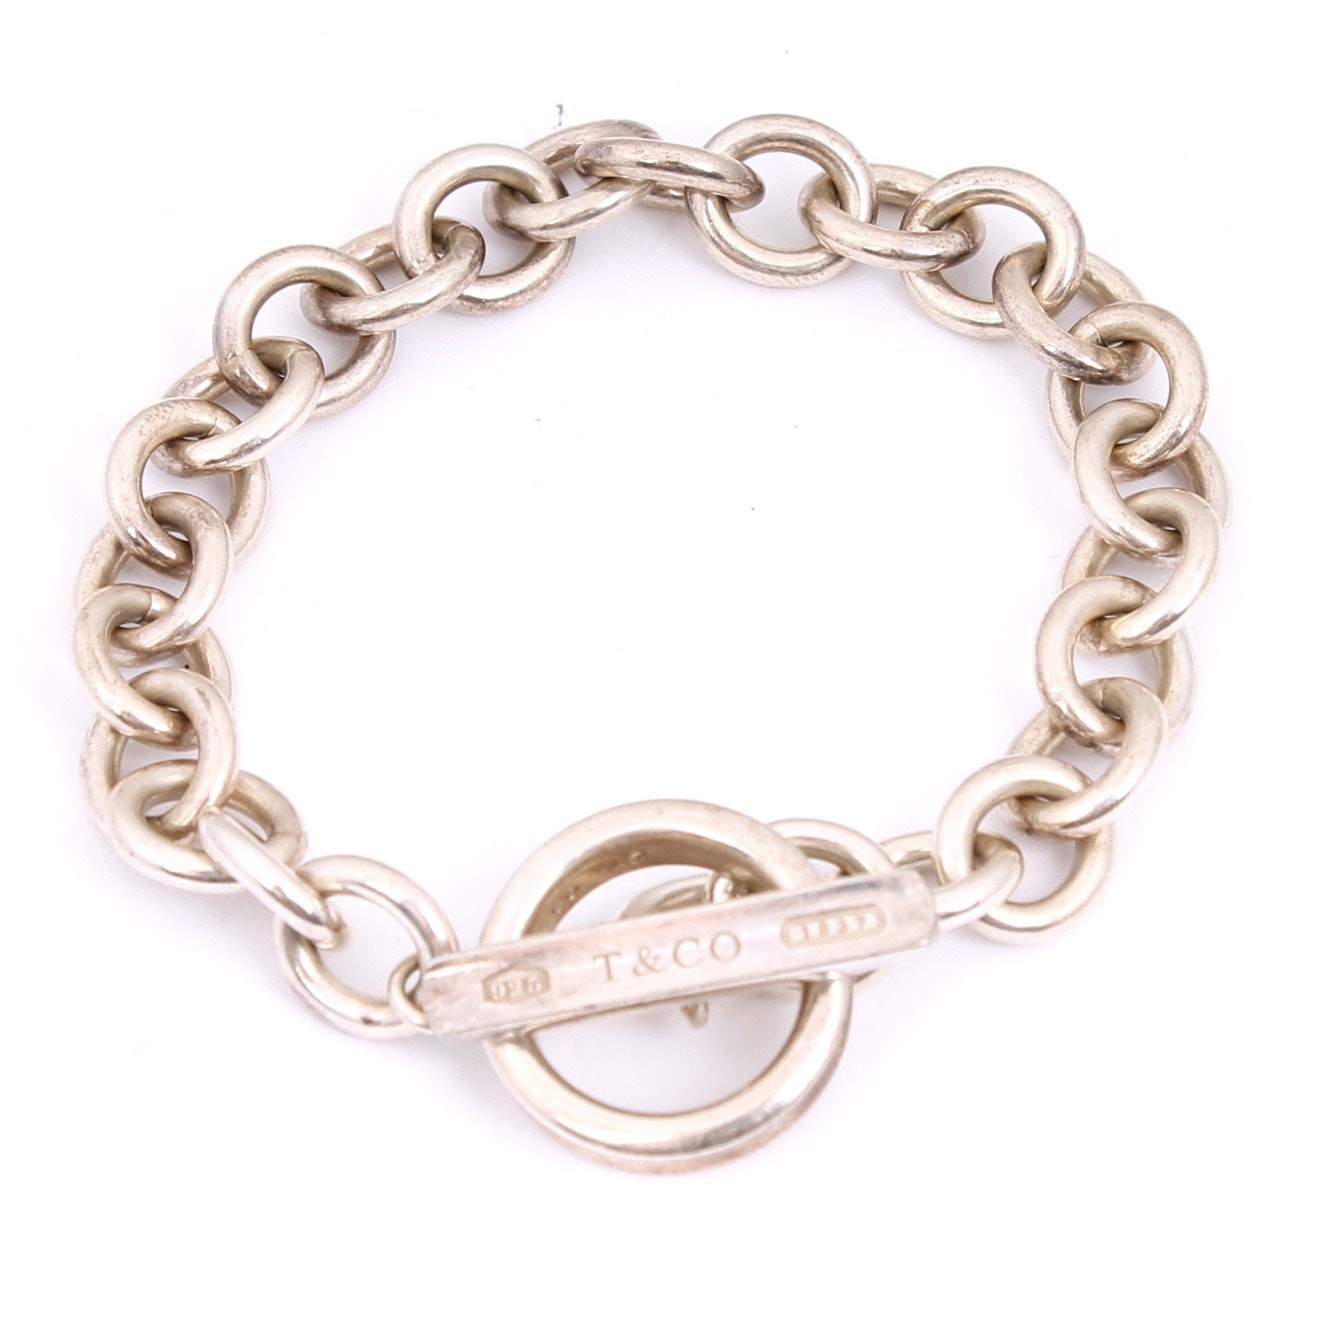 Tiffany & Co. Sterling Silver Link Bracelet